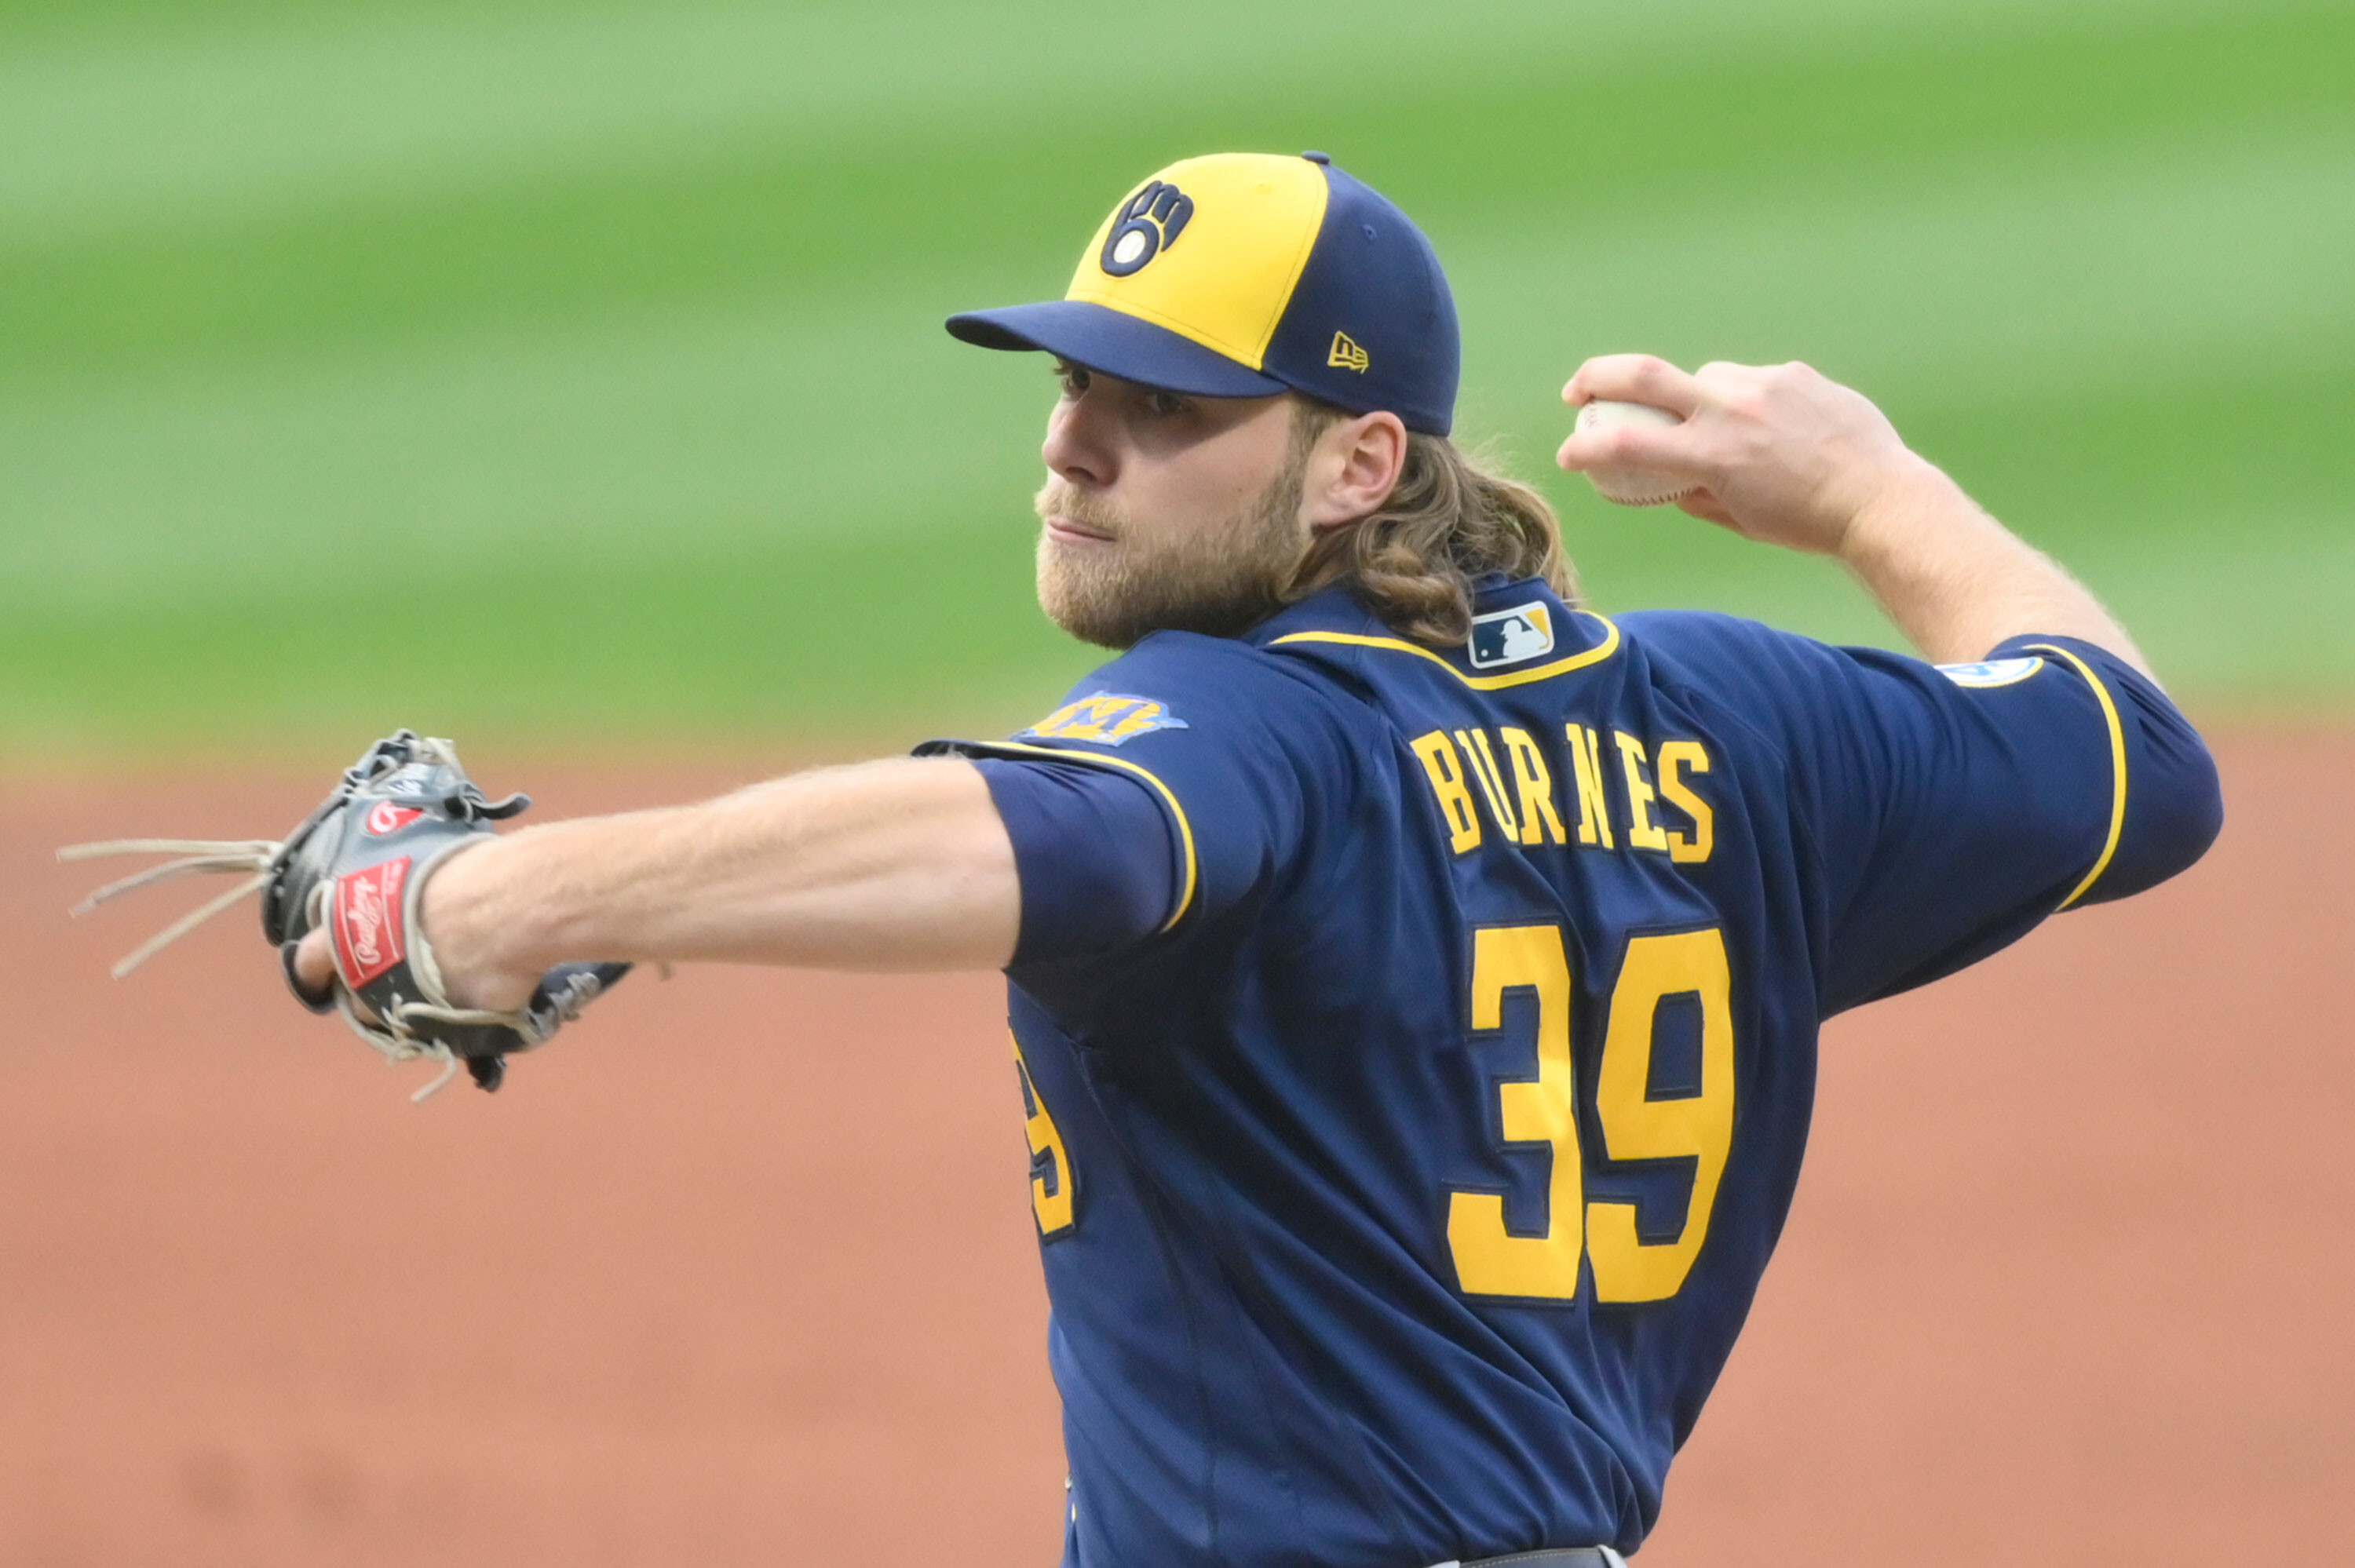 2 Milwaukee Brewers combine to throw MLB's record 9th no-hitter this season